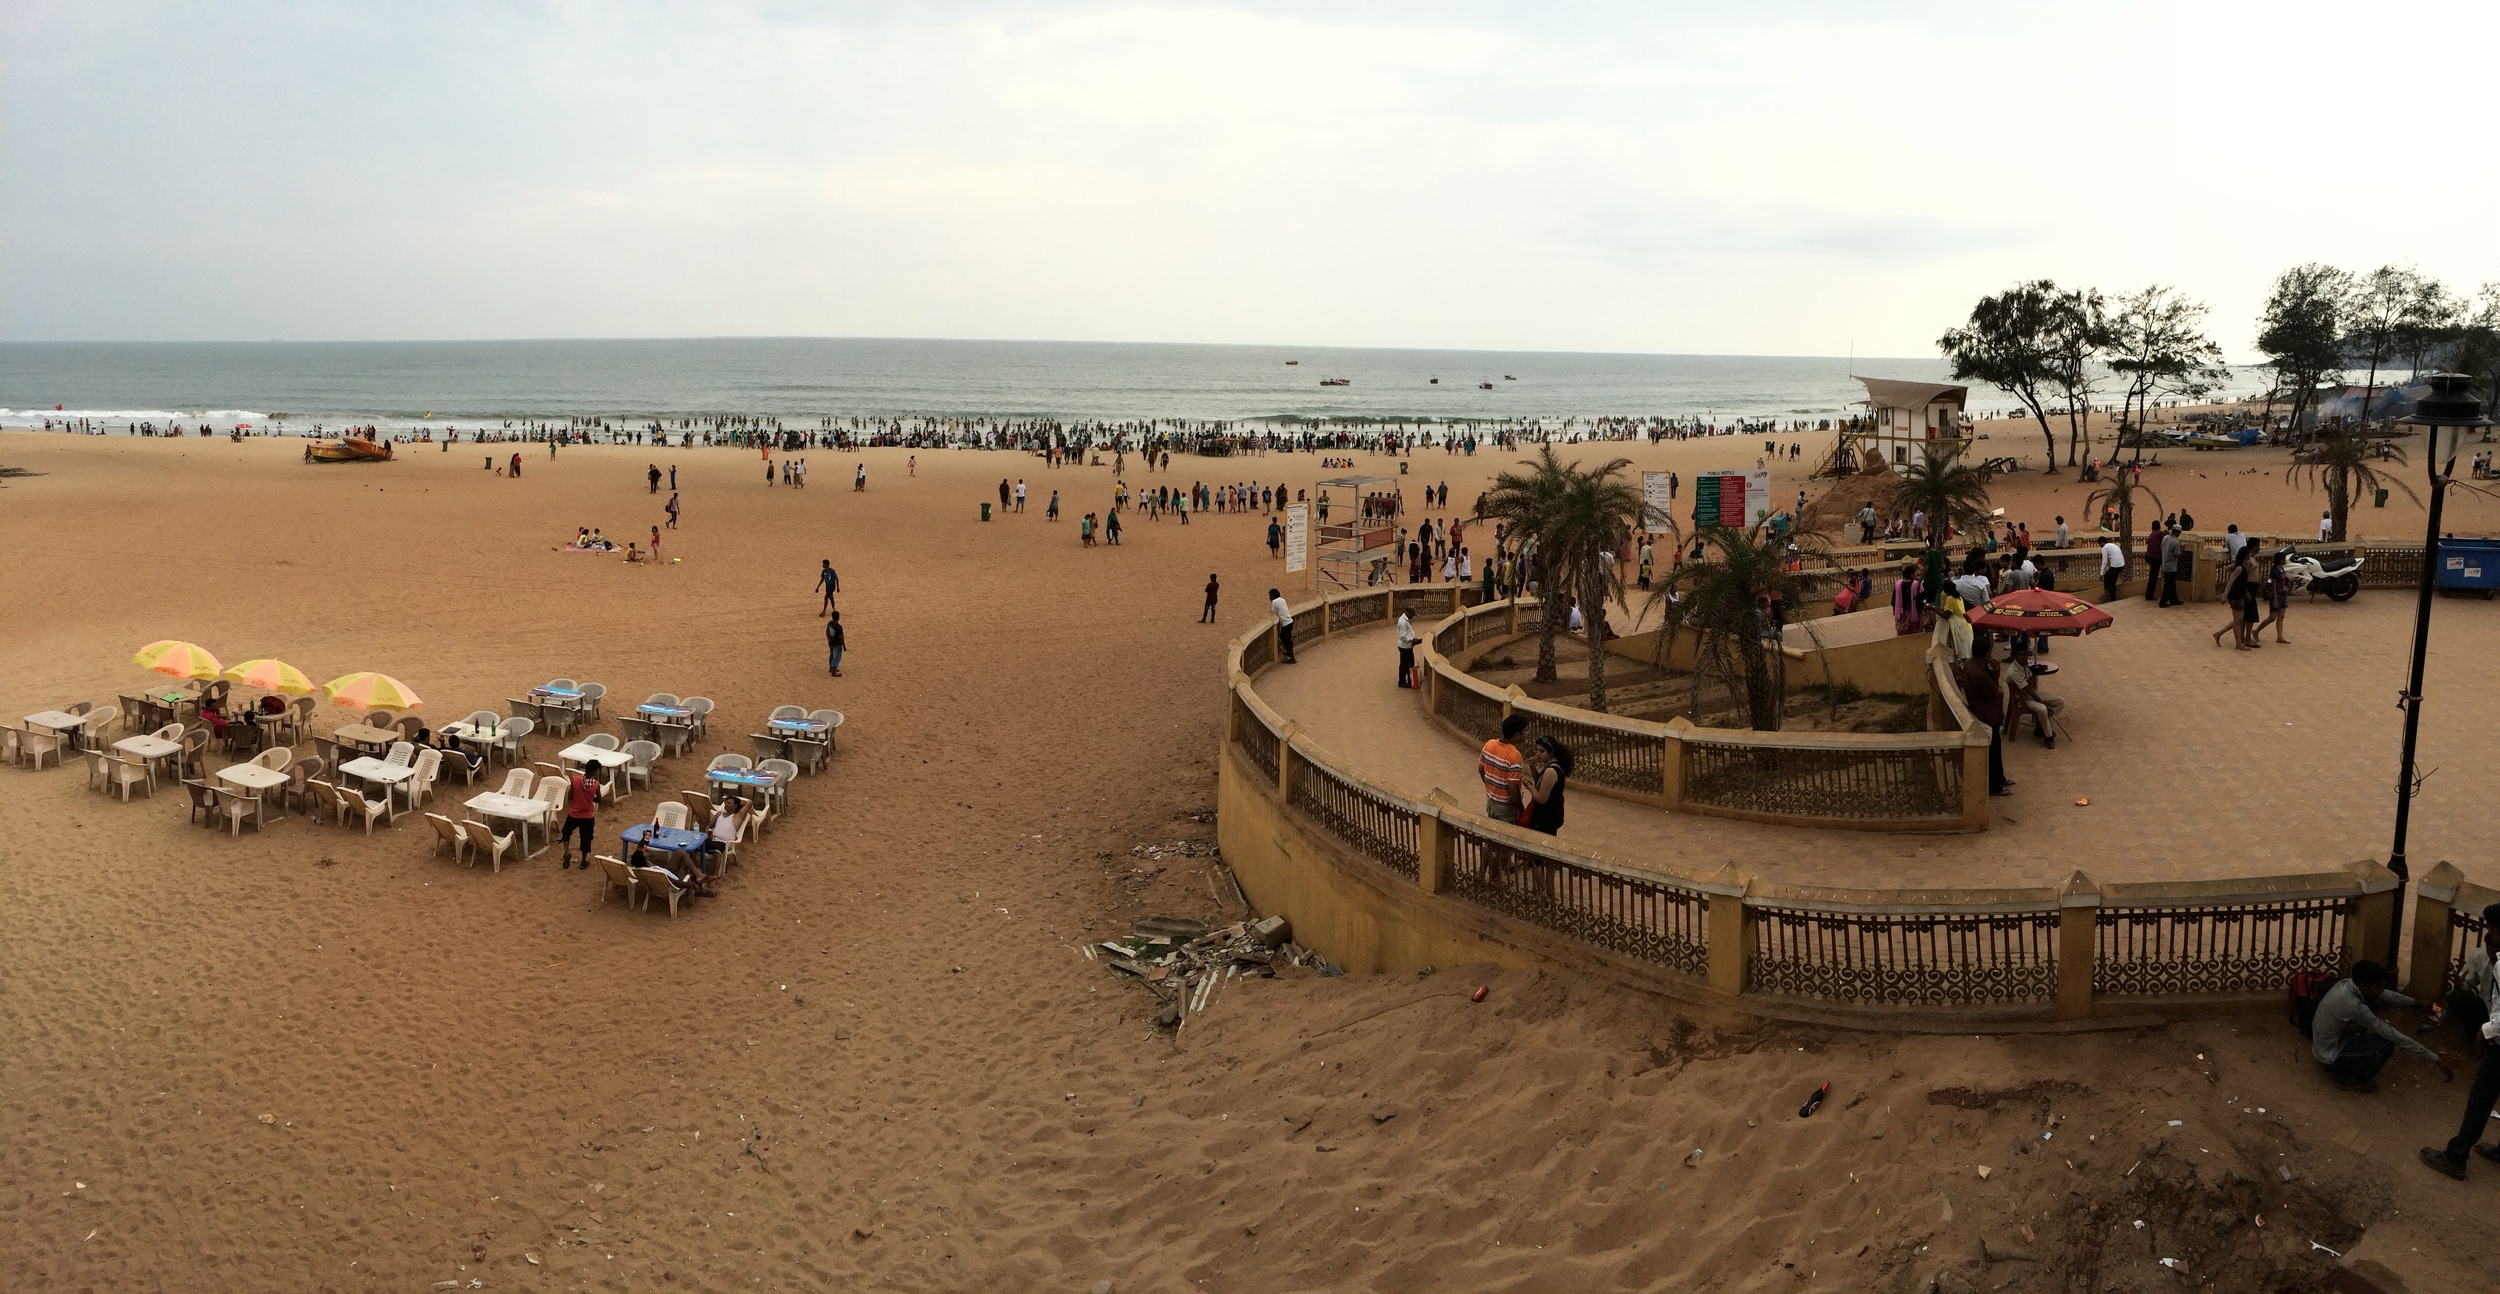 My view of Calangute Beach this afternoon.